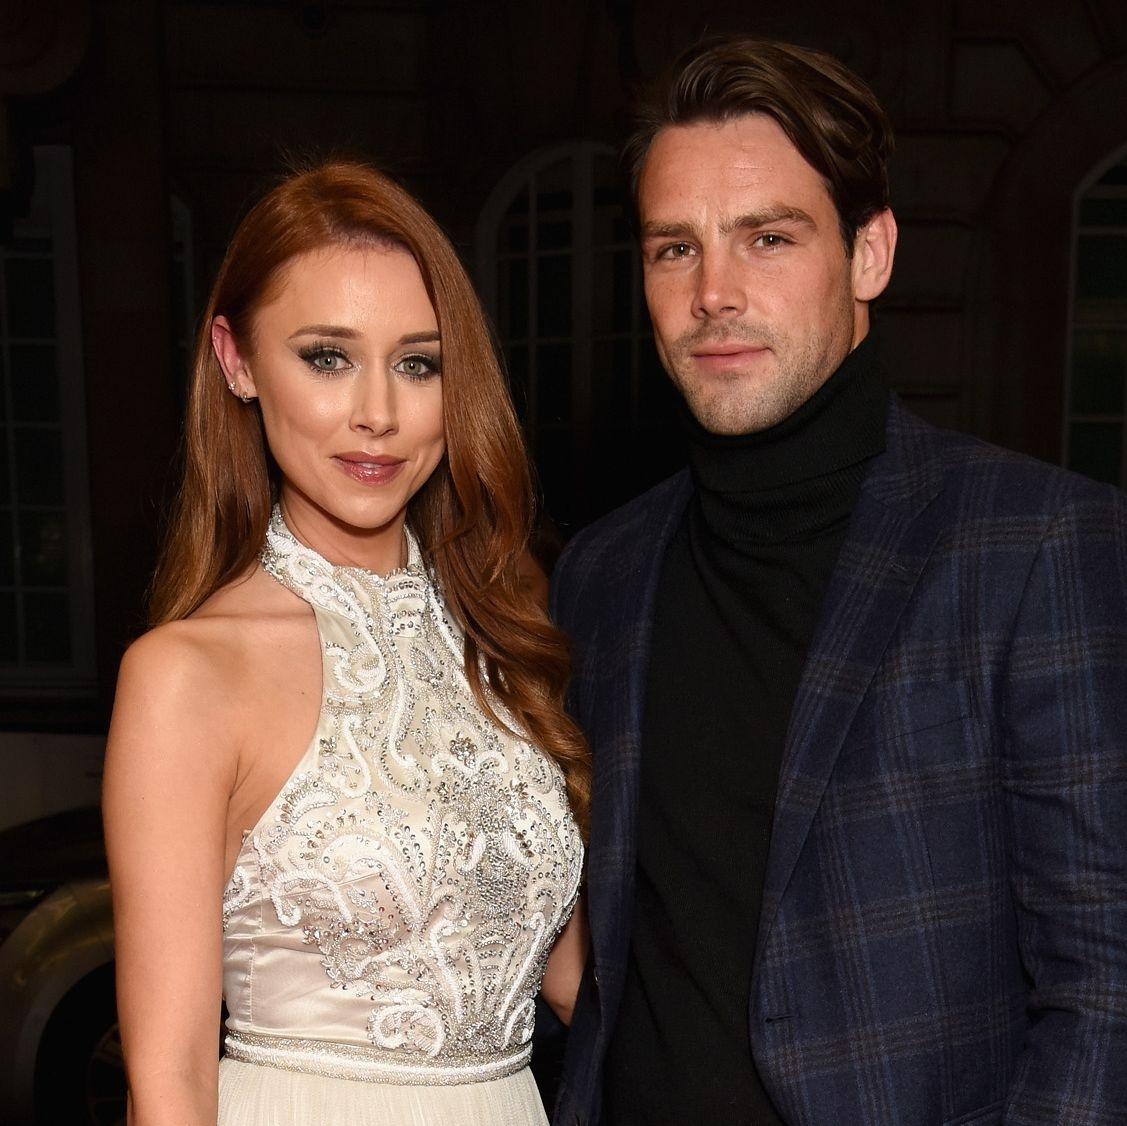 Ben Foden admits to cheating on The Saturdays star wife Una Healy